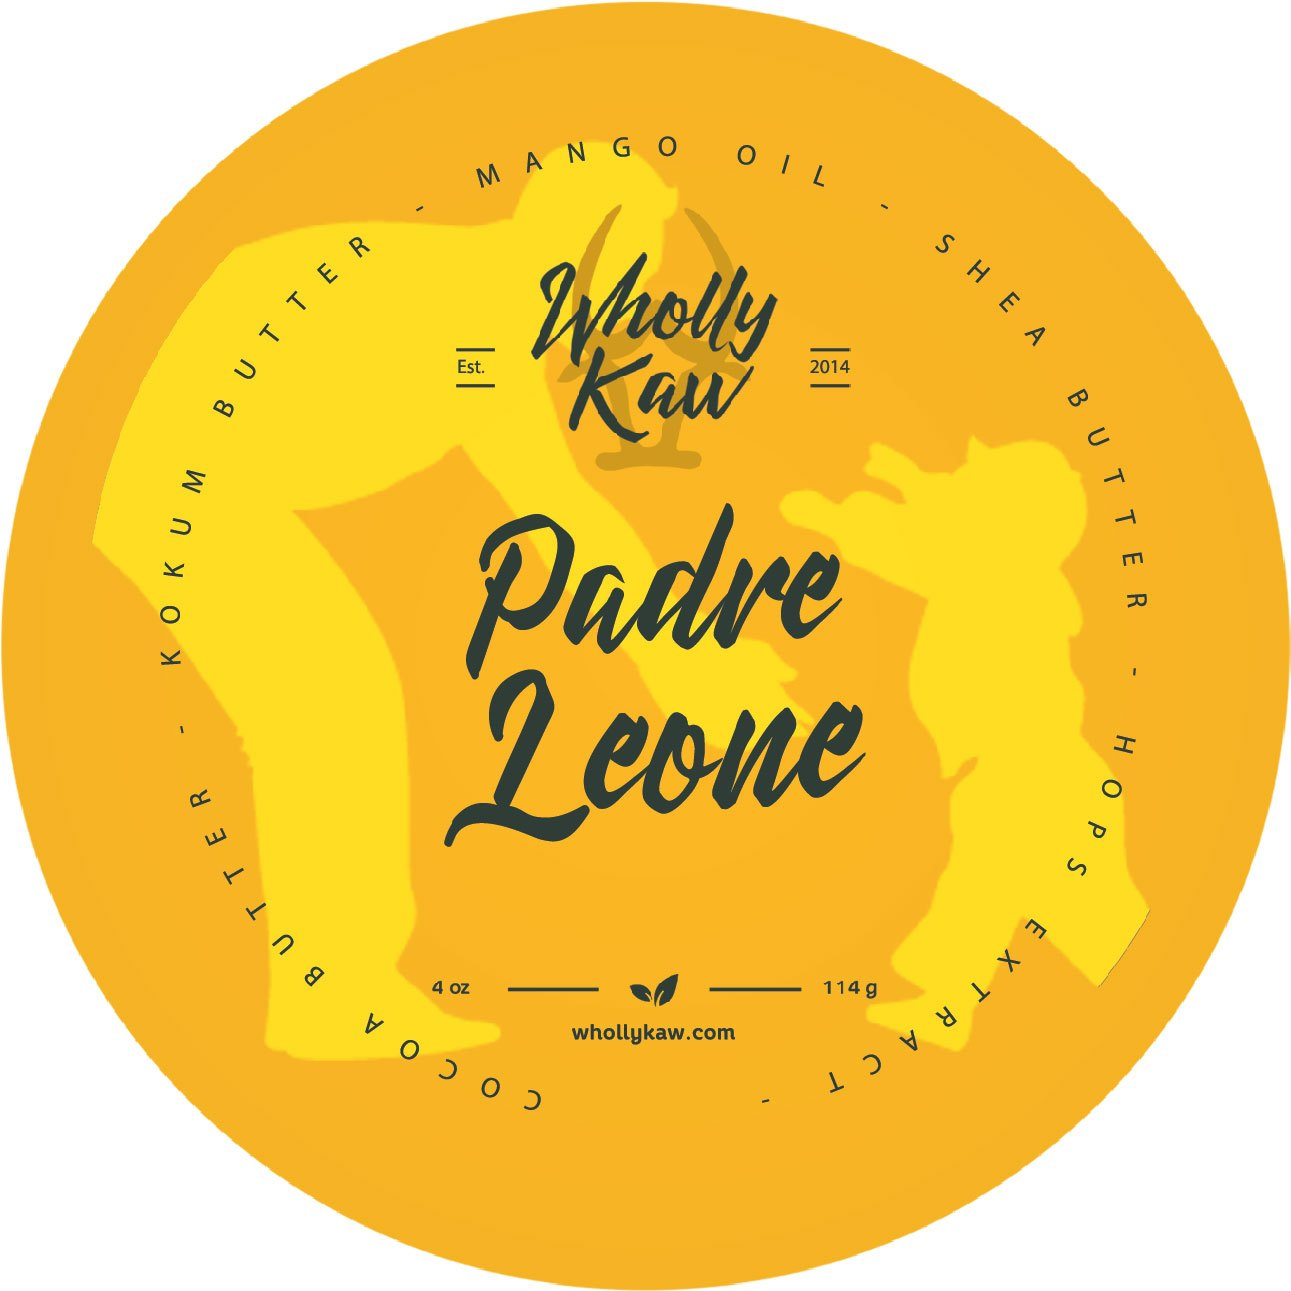 Wholly Kaw - Padre Leone - Soap (Vegan) image